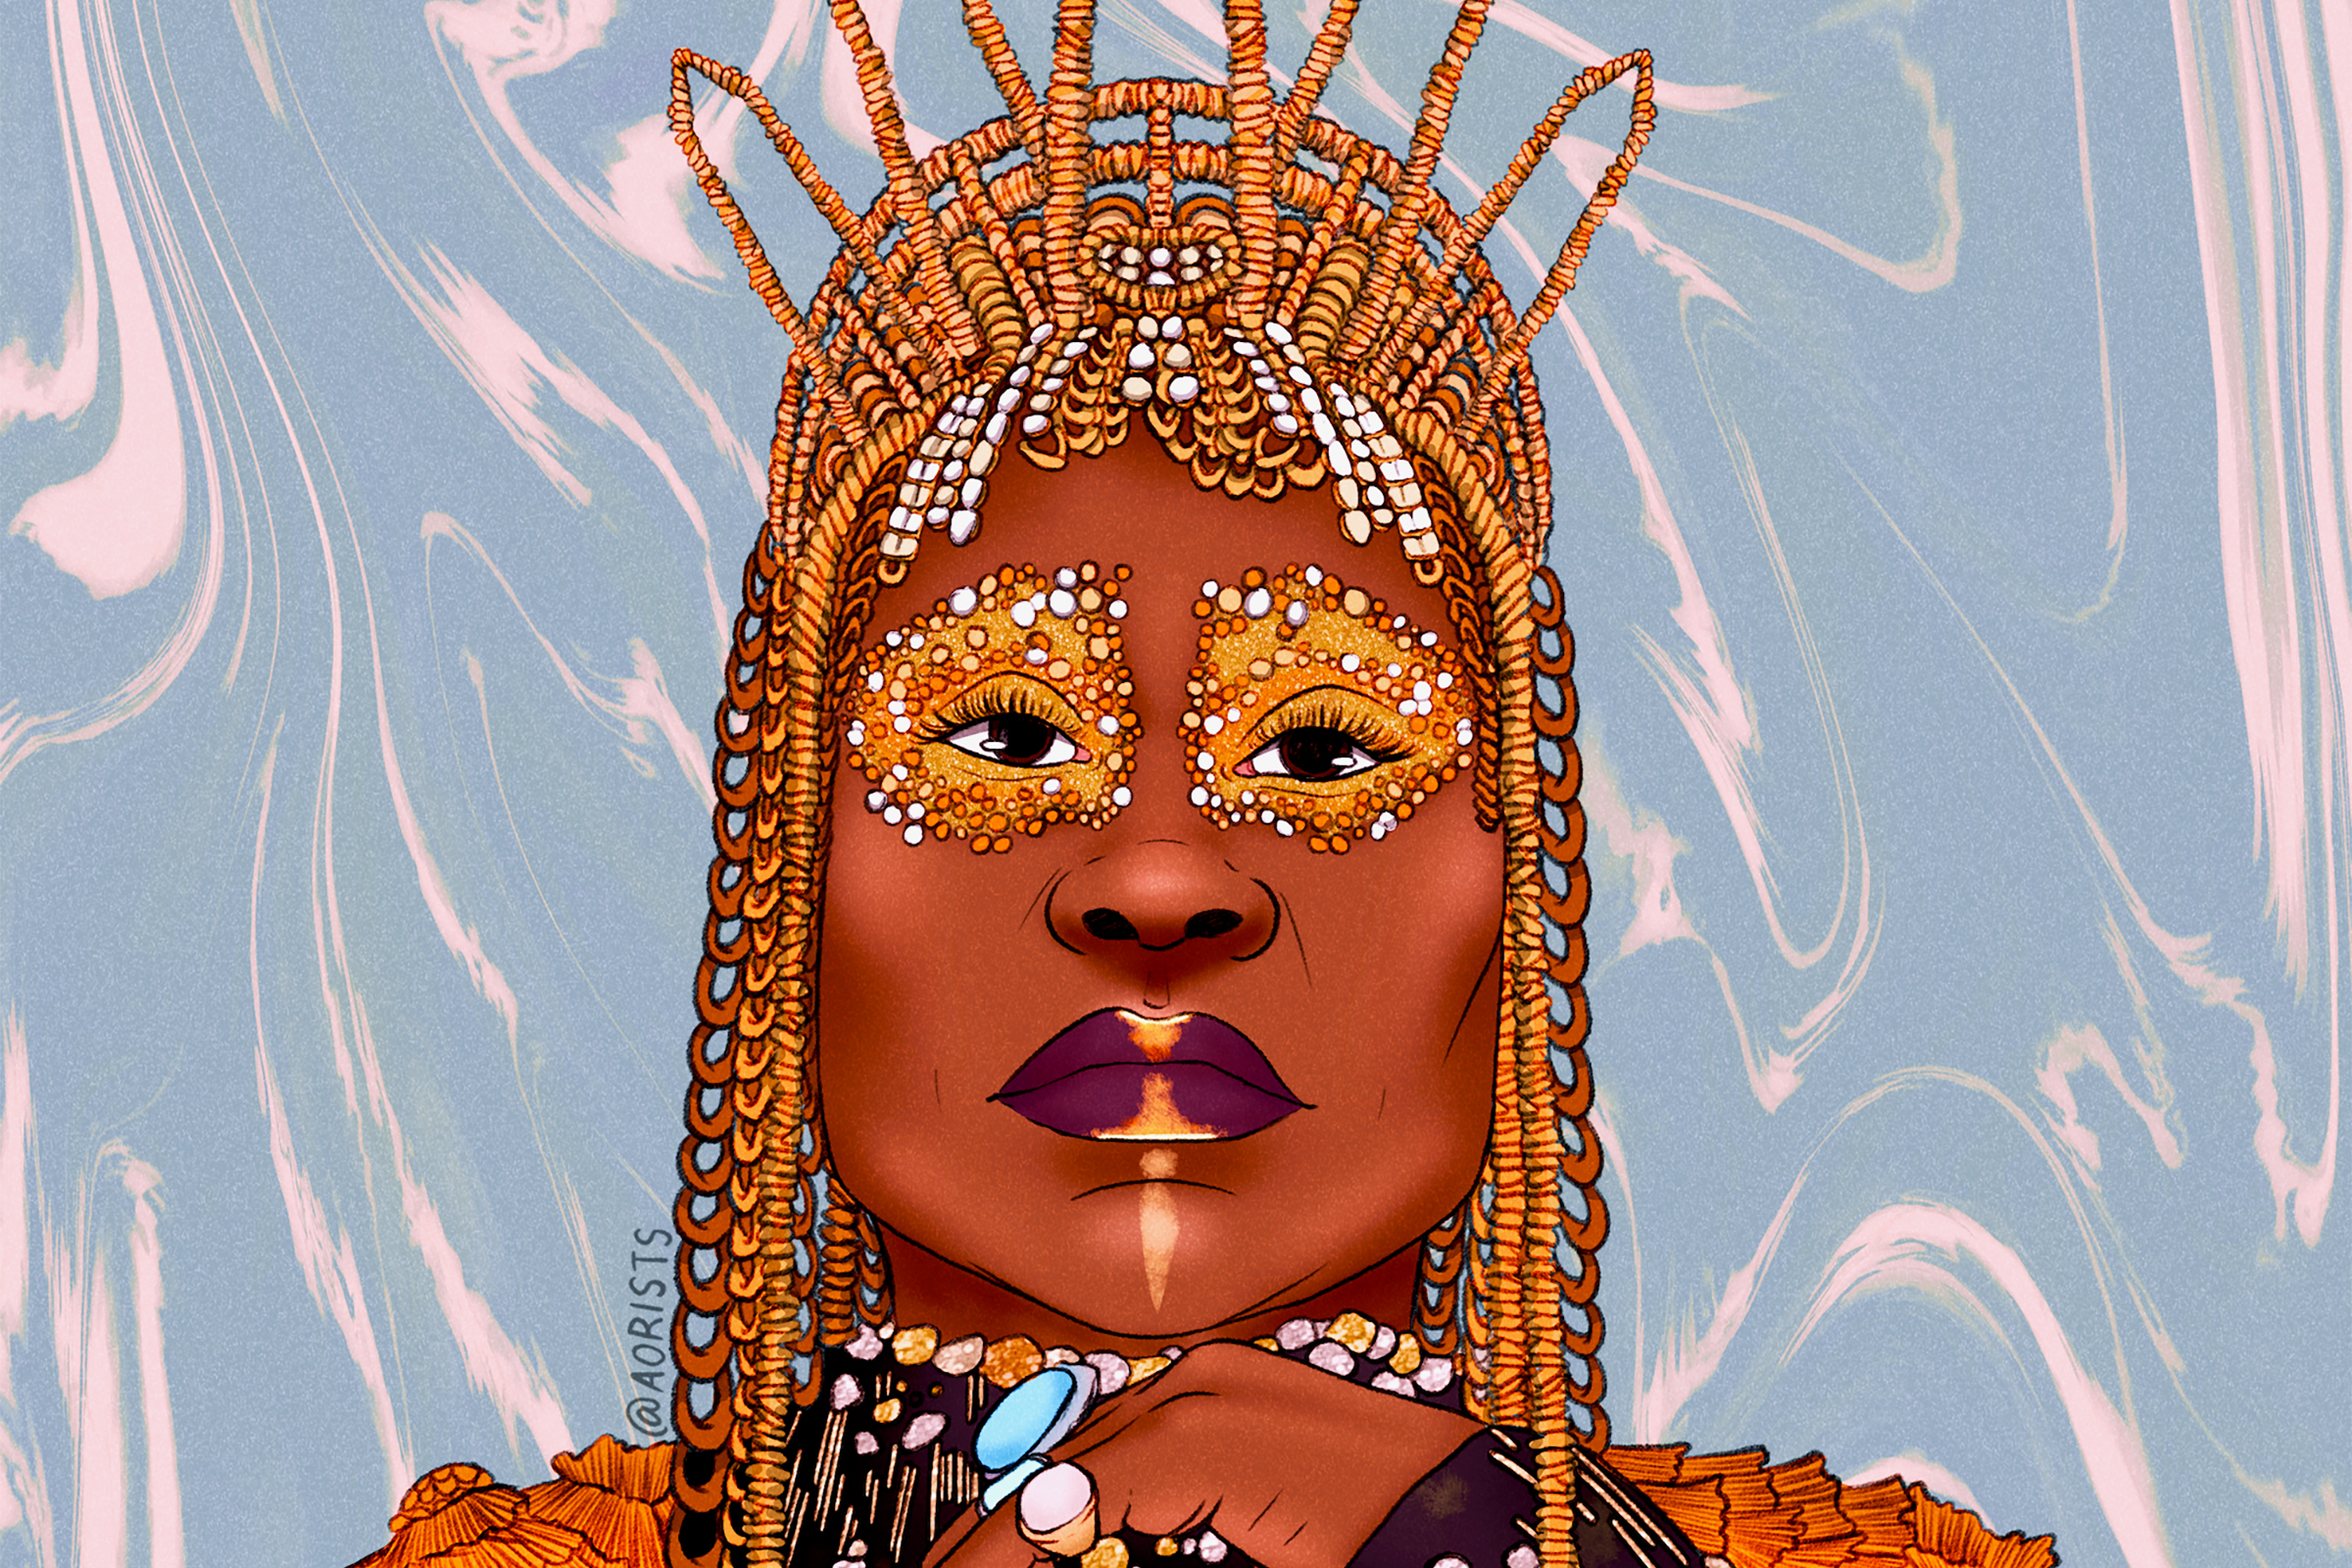 Illustration of Billy Porter, a thin, Black man, against a marble swirled background wearing a tiara with jewels around his eyes